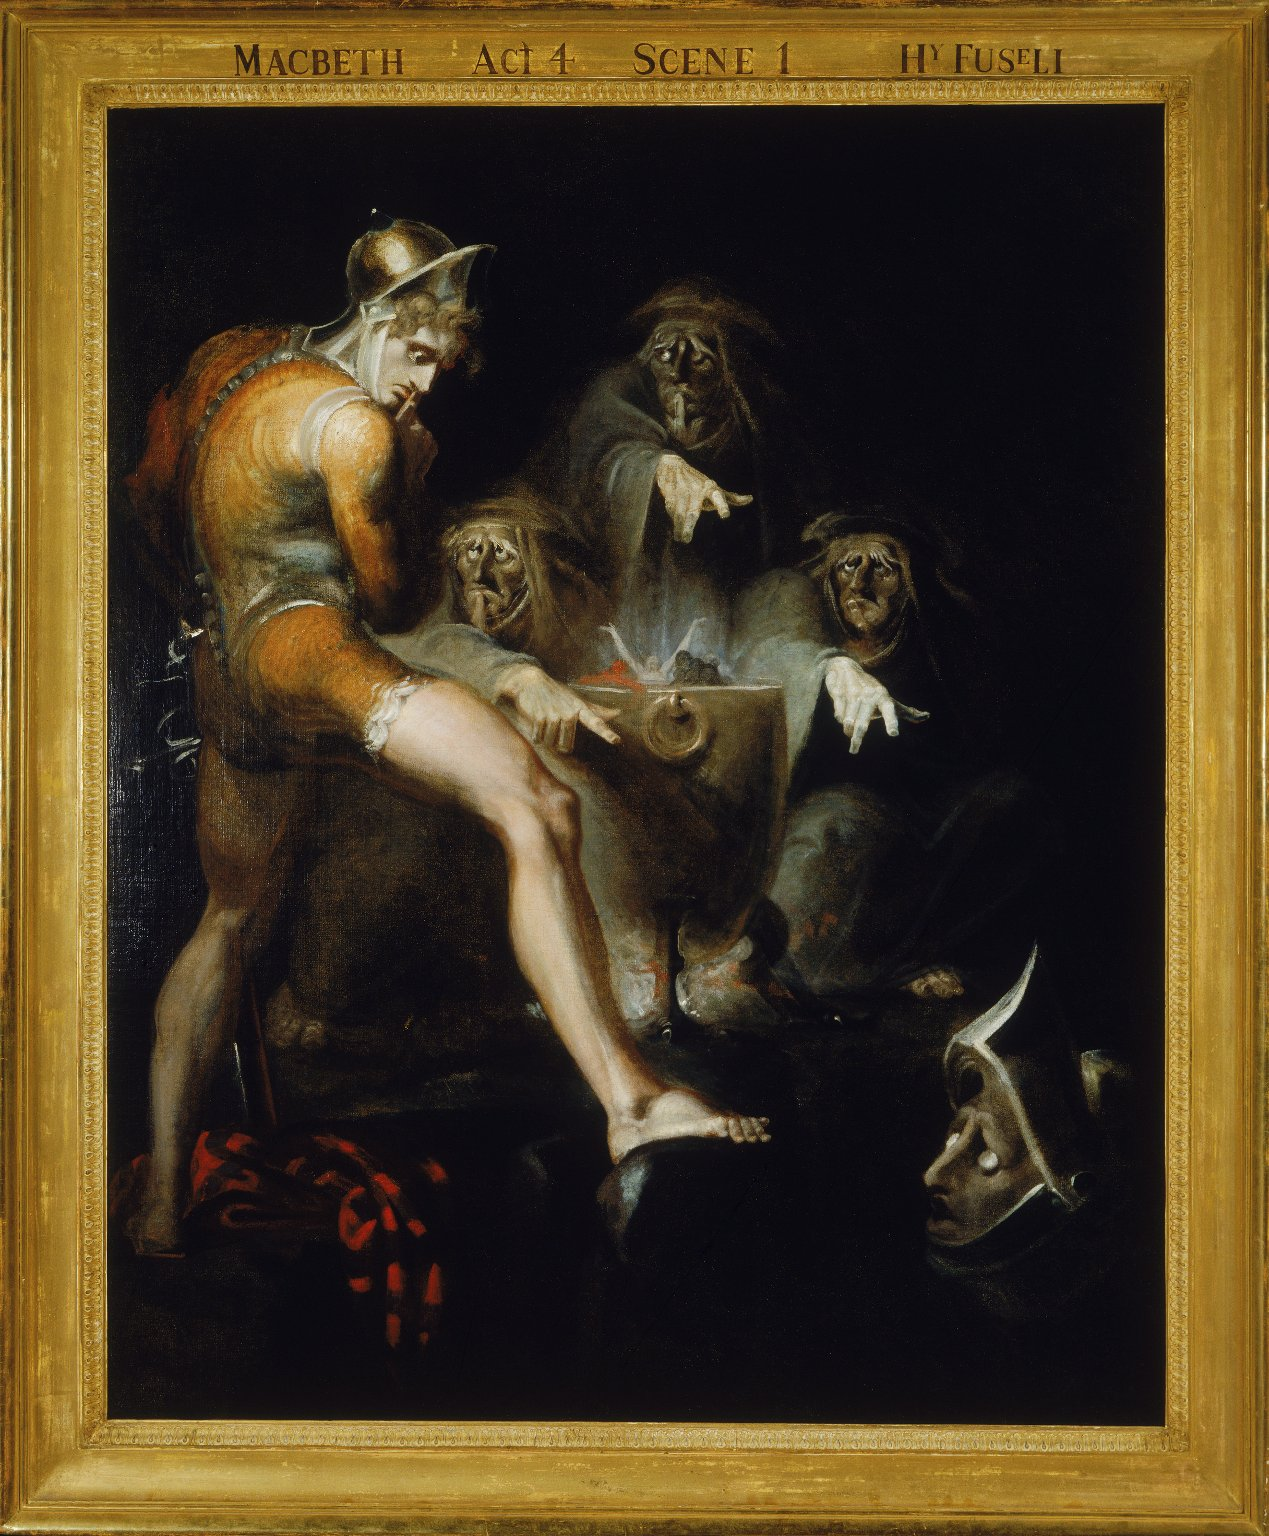 Henry Fuseli's painting of Macbeth with the witches (Act 4, scene 1; 1793)